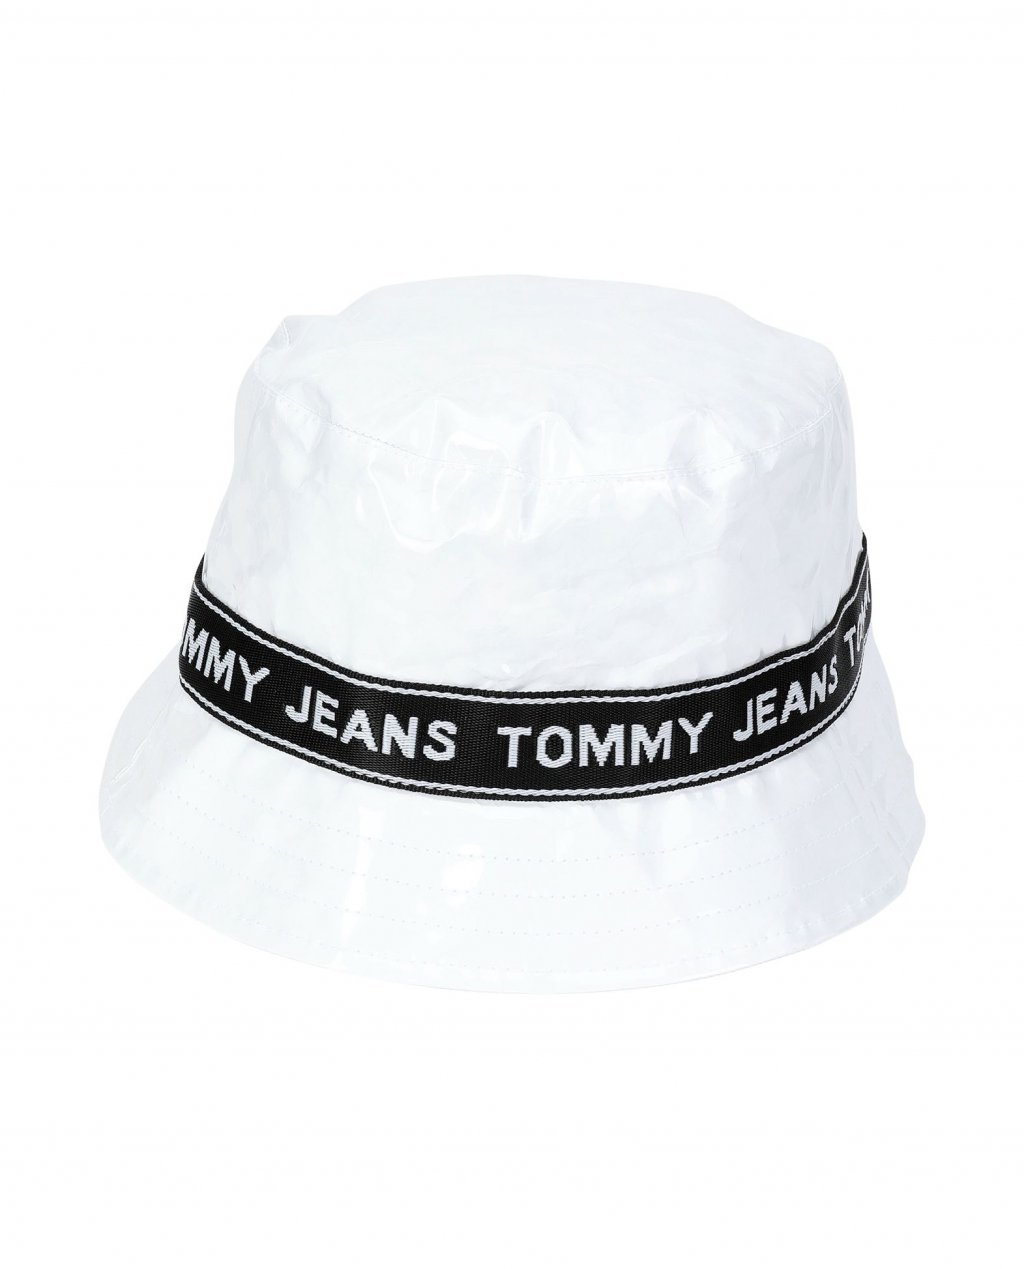 Tommy Jeans Bucket Hat